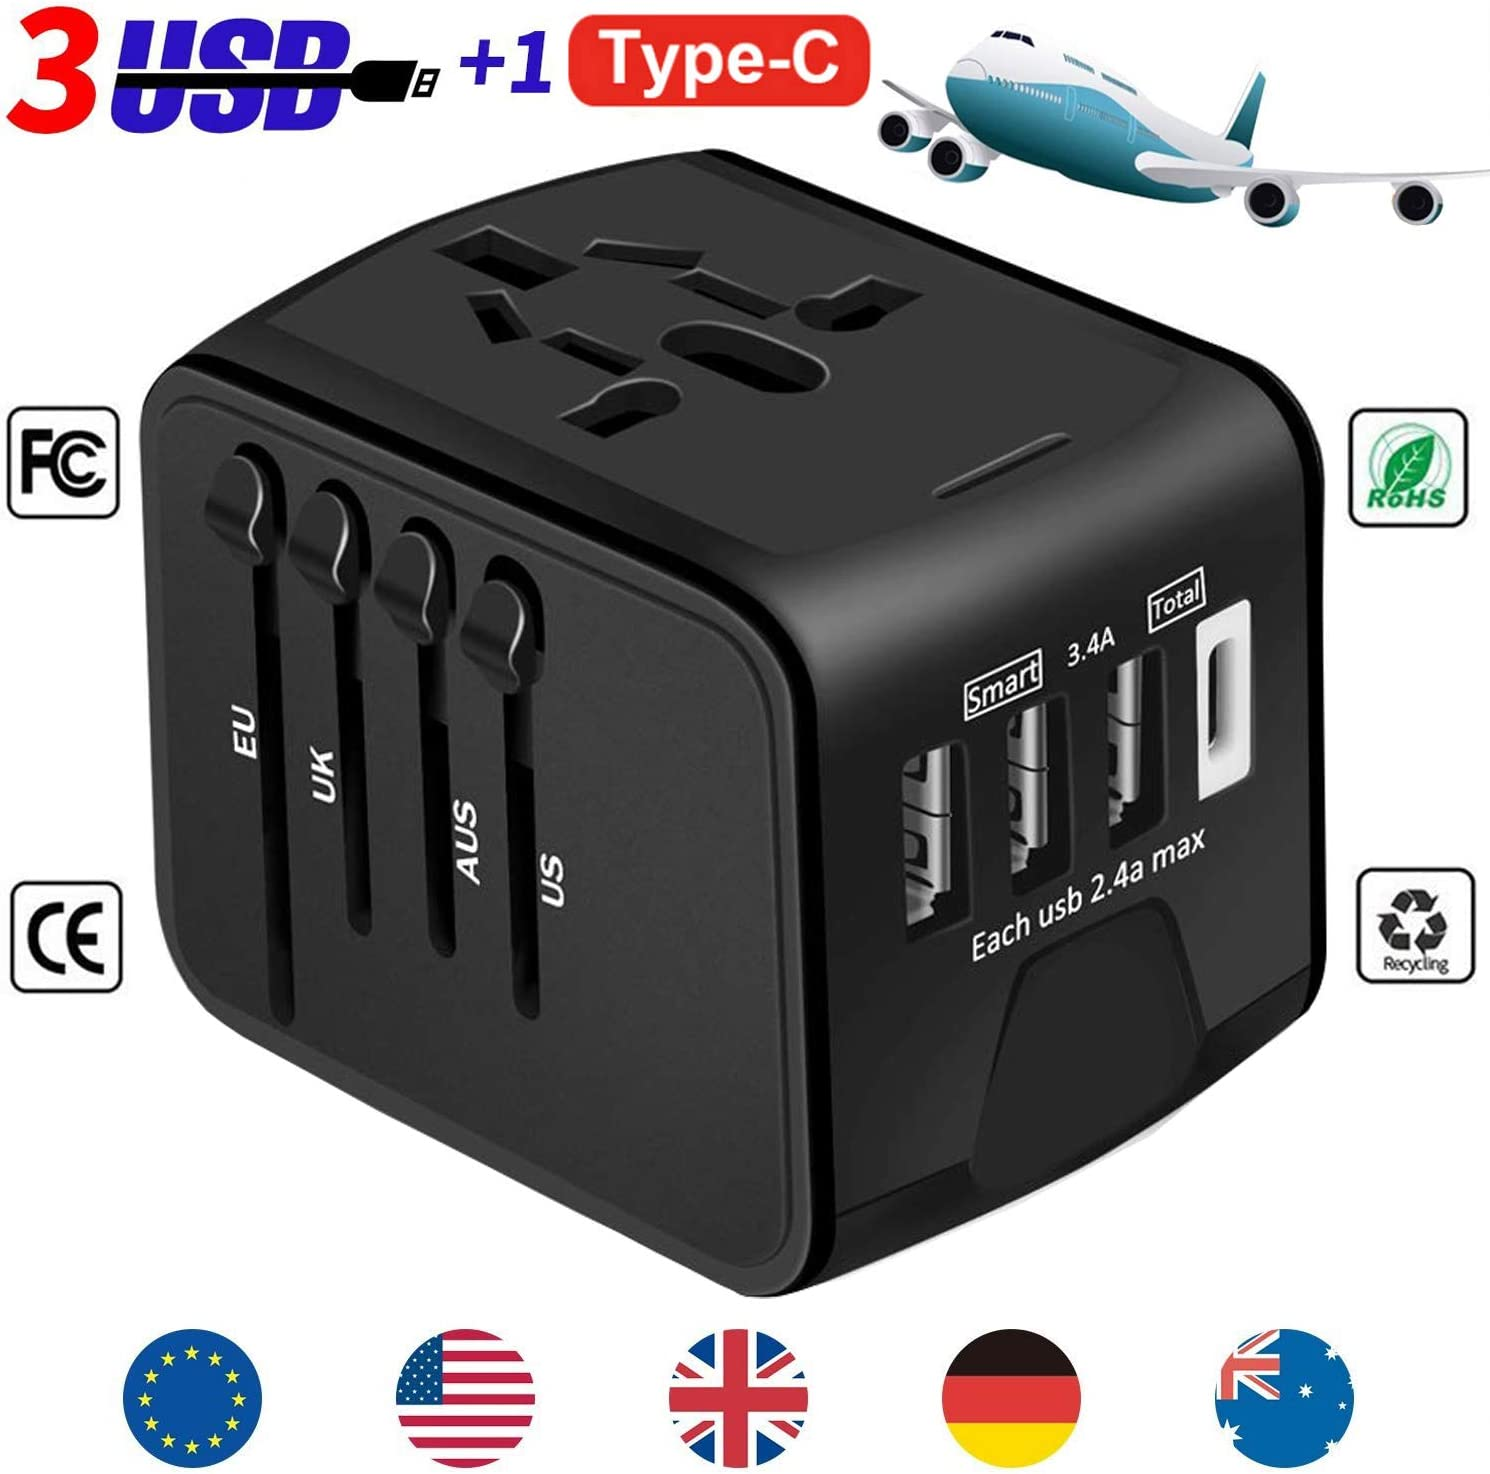 YooGoal Universal Travel Adapter Quick USB Charger with 1 Type C and 3 USB Ports International World Power Plug Adapter Kit Charger USB Plug with UK, EU, AU, CN,US for 200 Countries (Black)